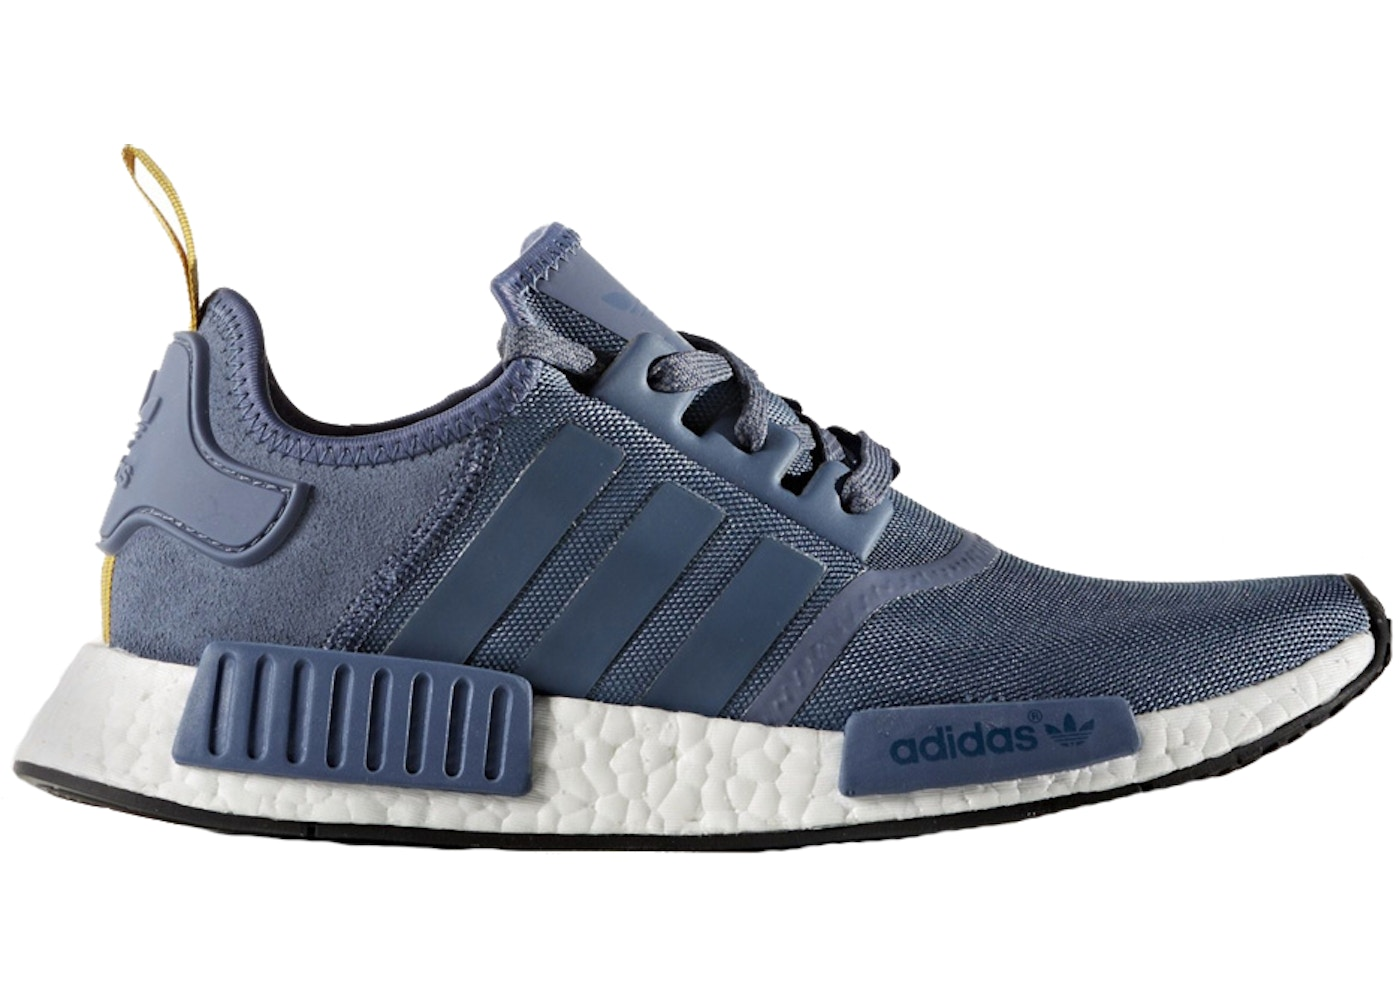 detailed look d4753 c2bf8 adidas NMD R1 R1 Tech Ink - S31514